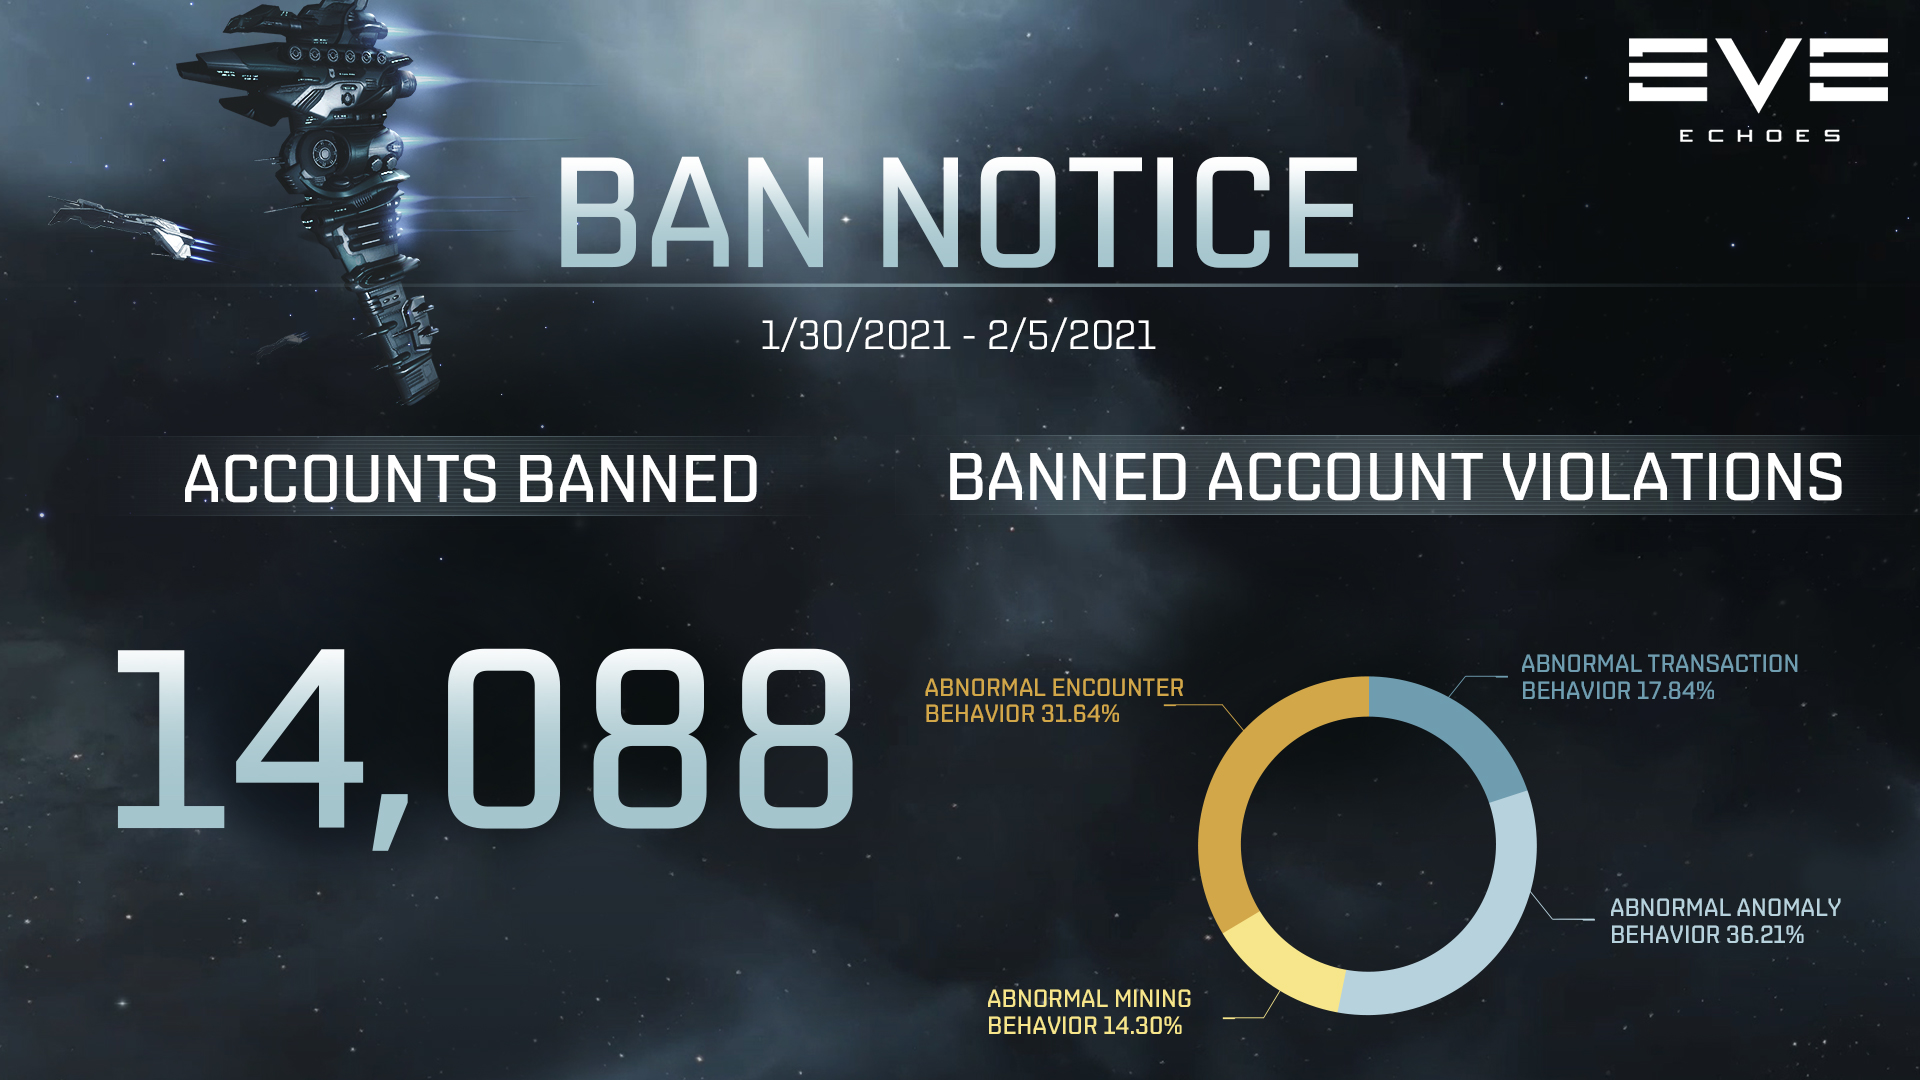 Ban Notice for 01/30-02/05